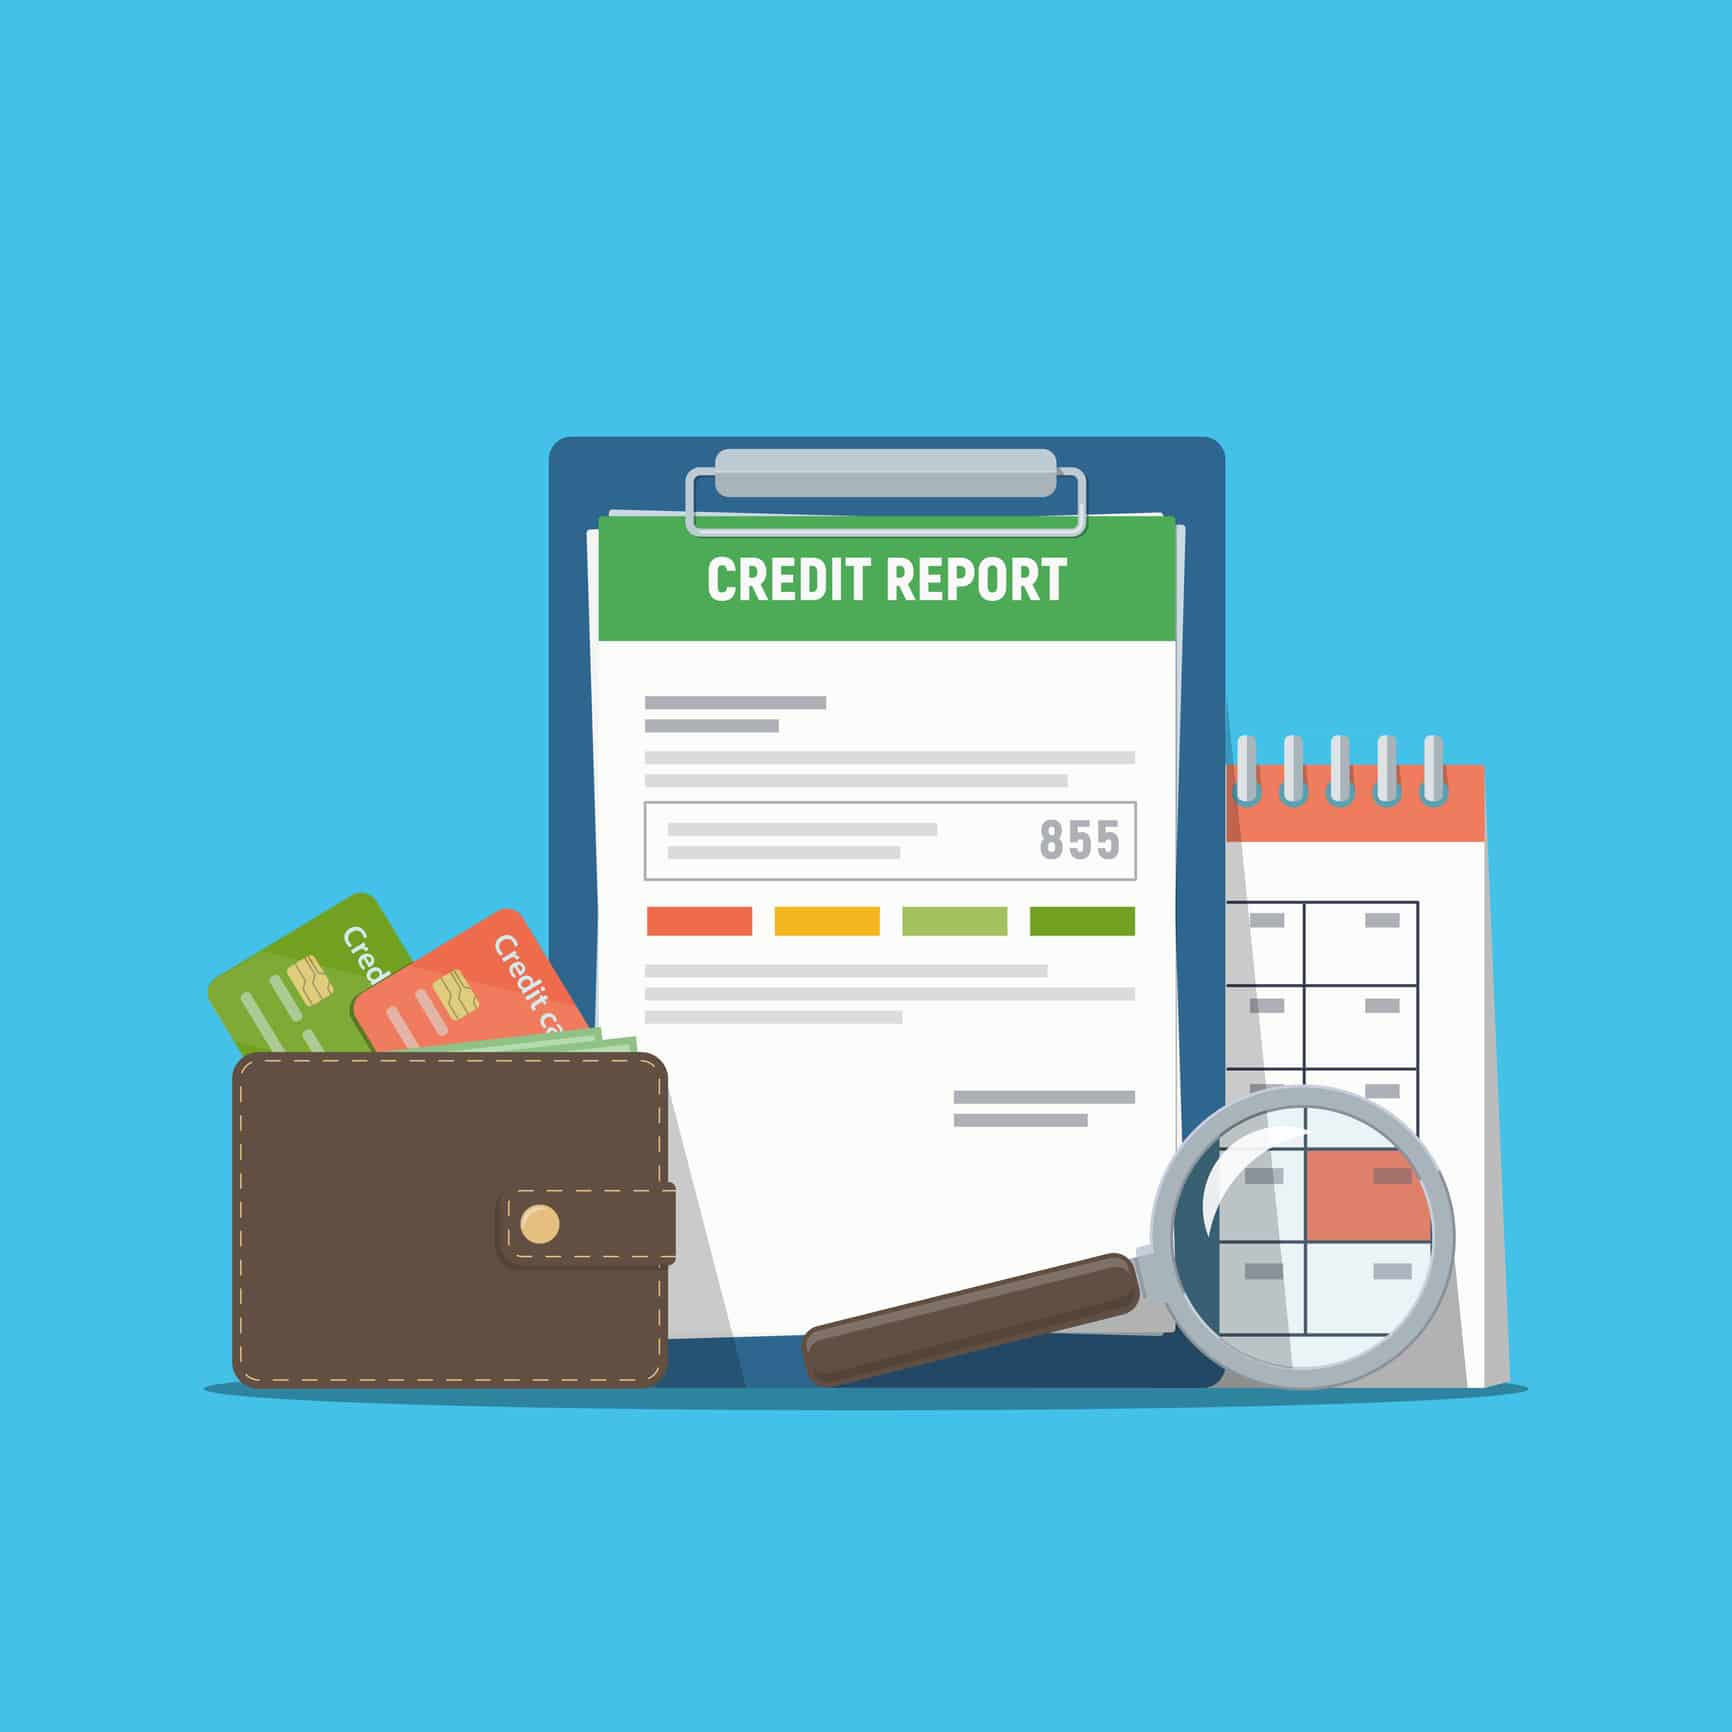 Image of a credit report showing a person's credit score